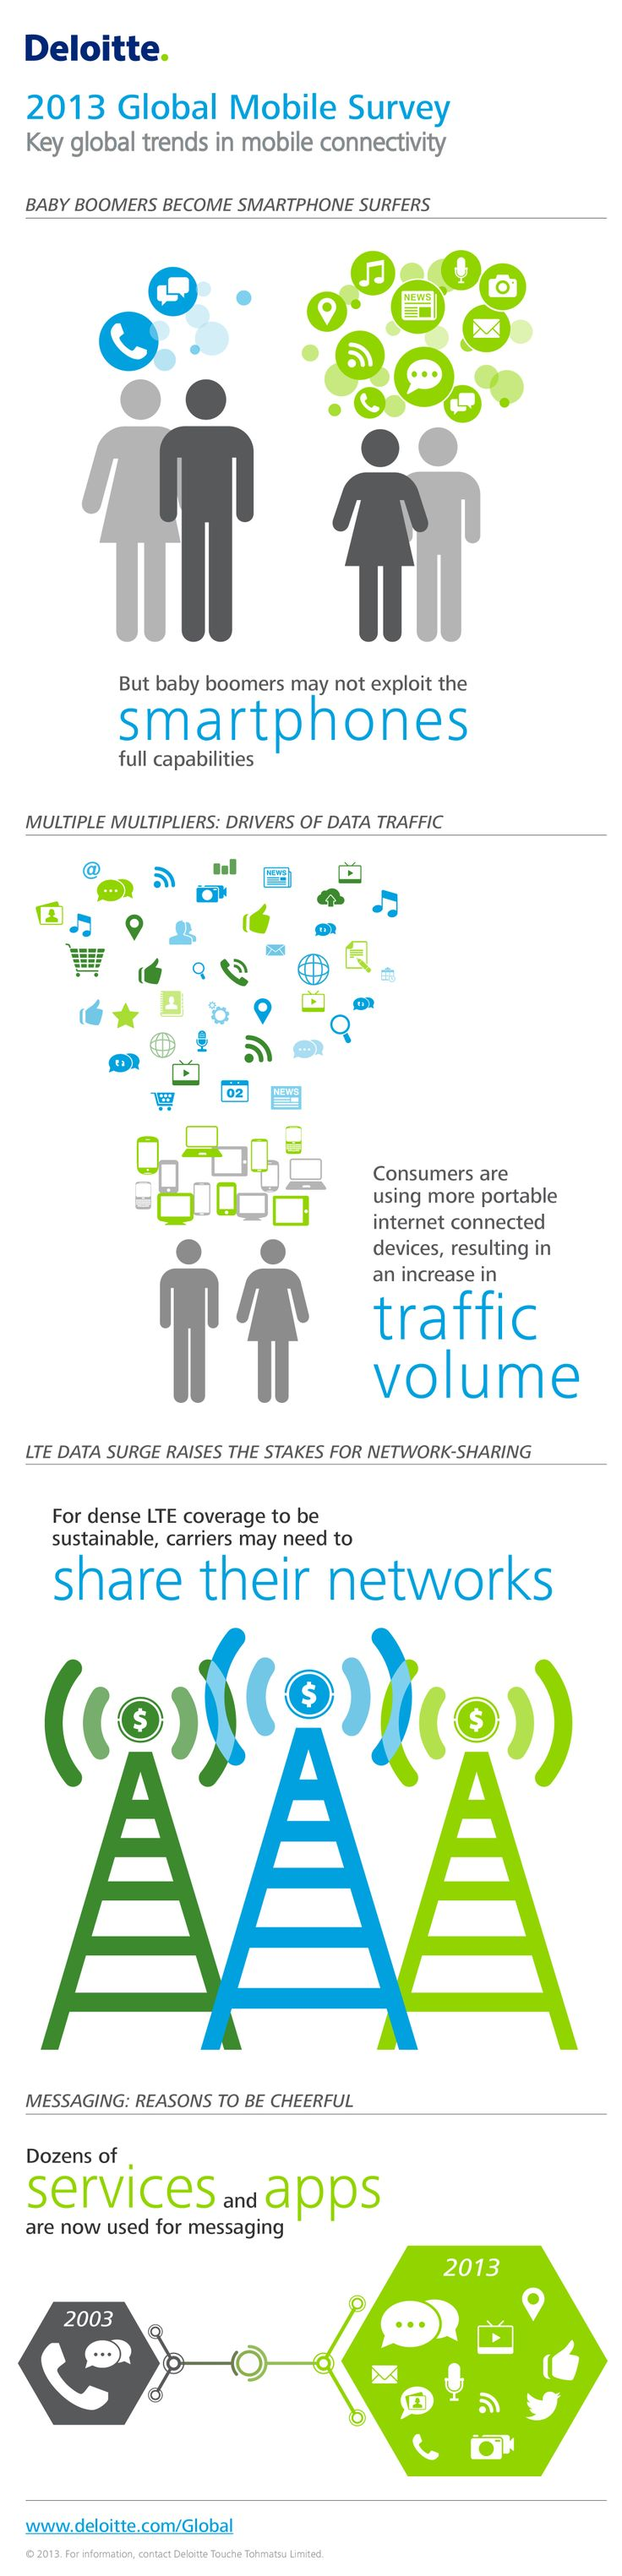 2013 Global Mobile Survey | Deloitte | Technology, Media & Telecommunications industry report